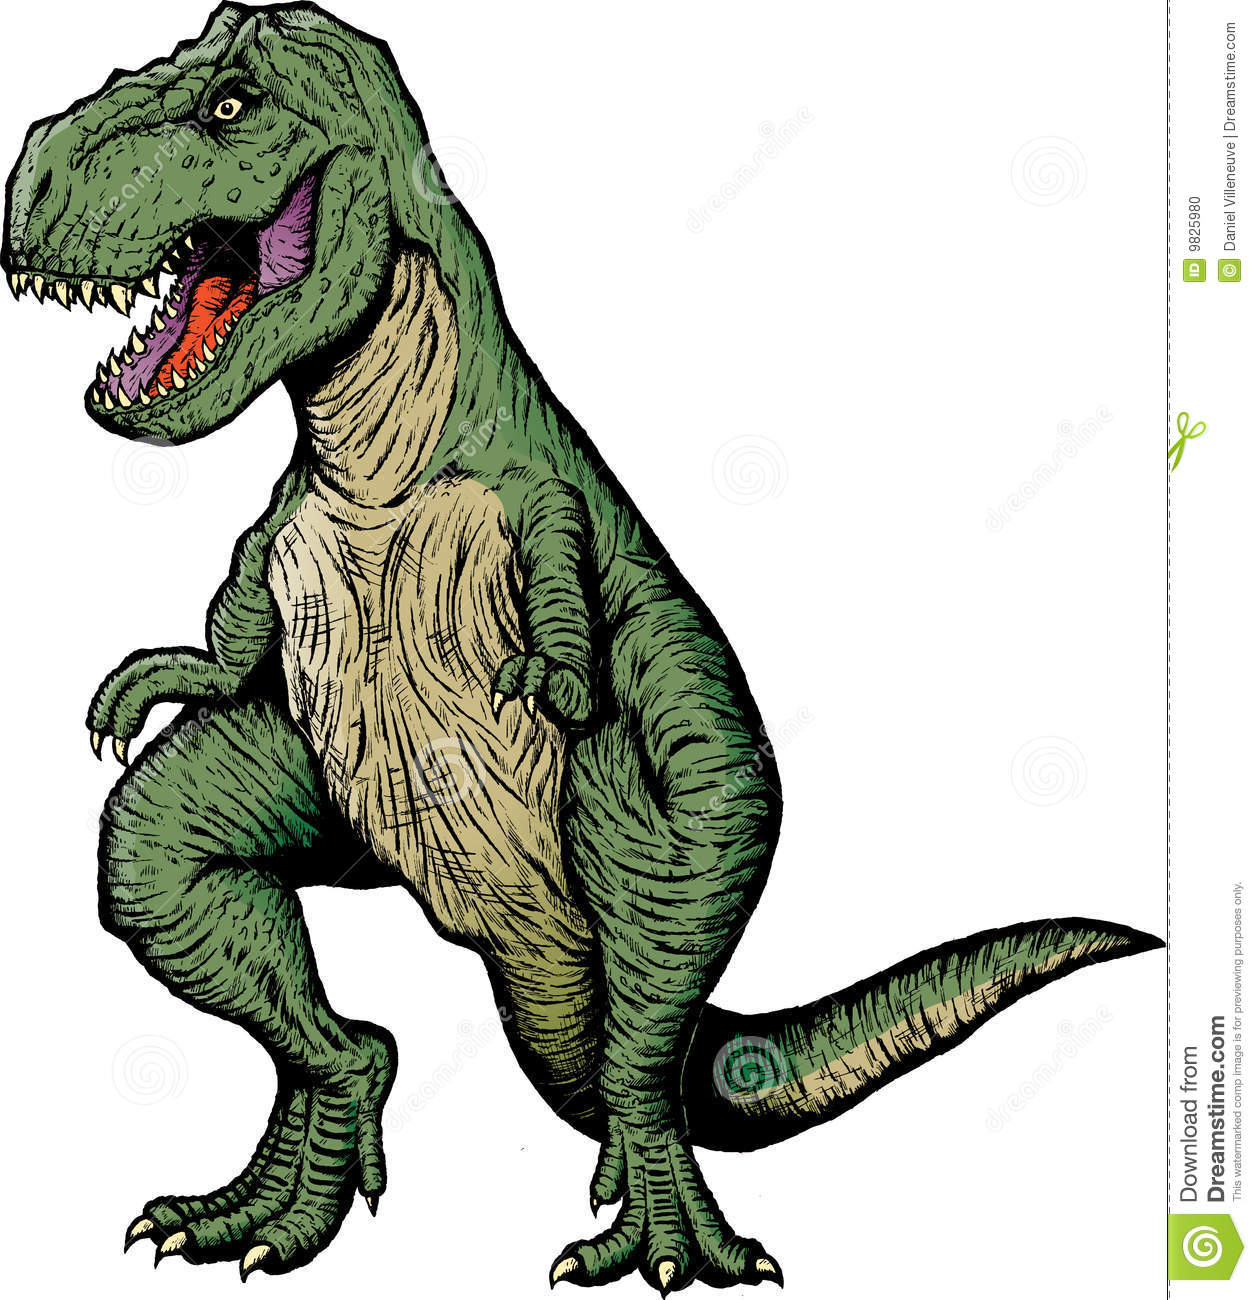 Tyrannosaurus Rex clipart #15, Download drawings